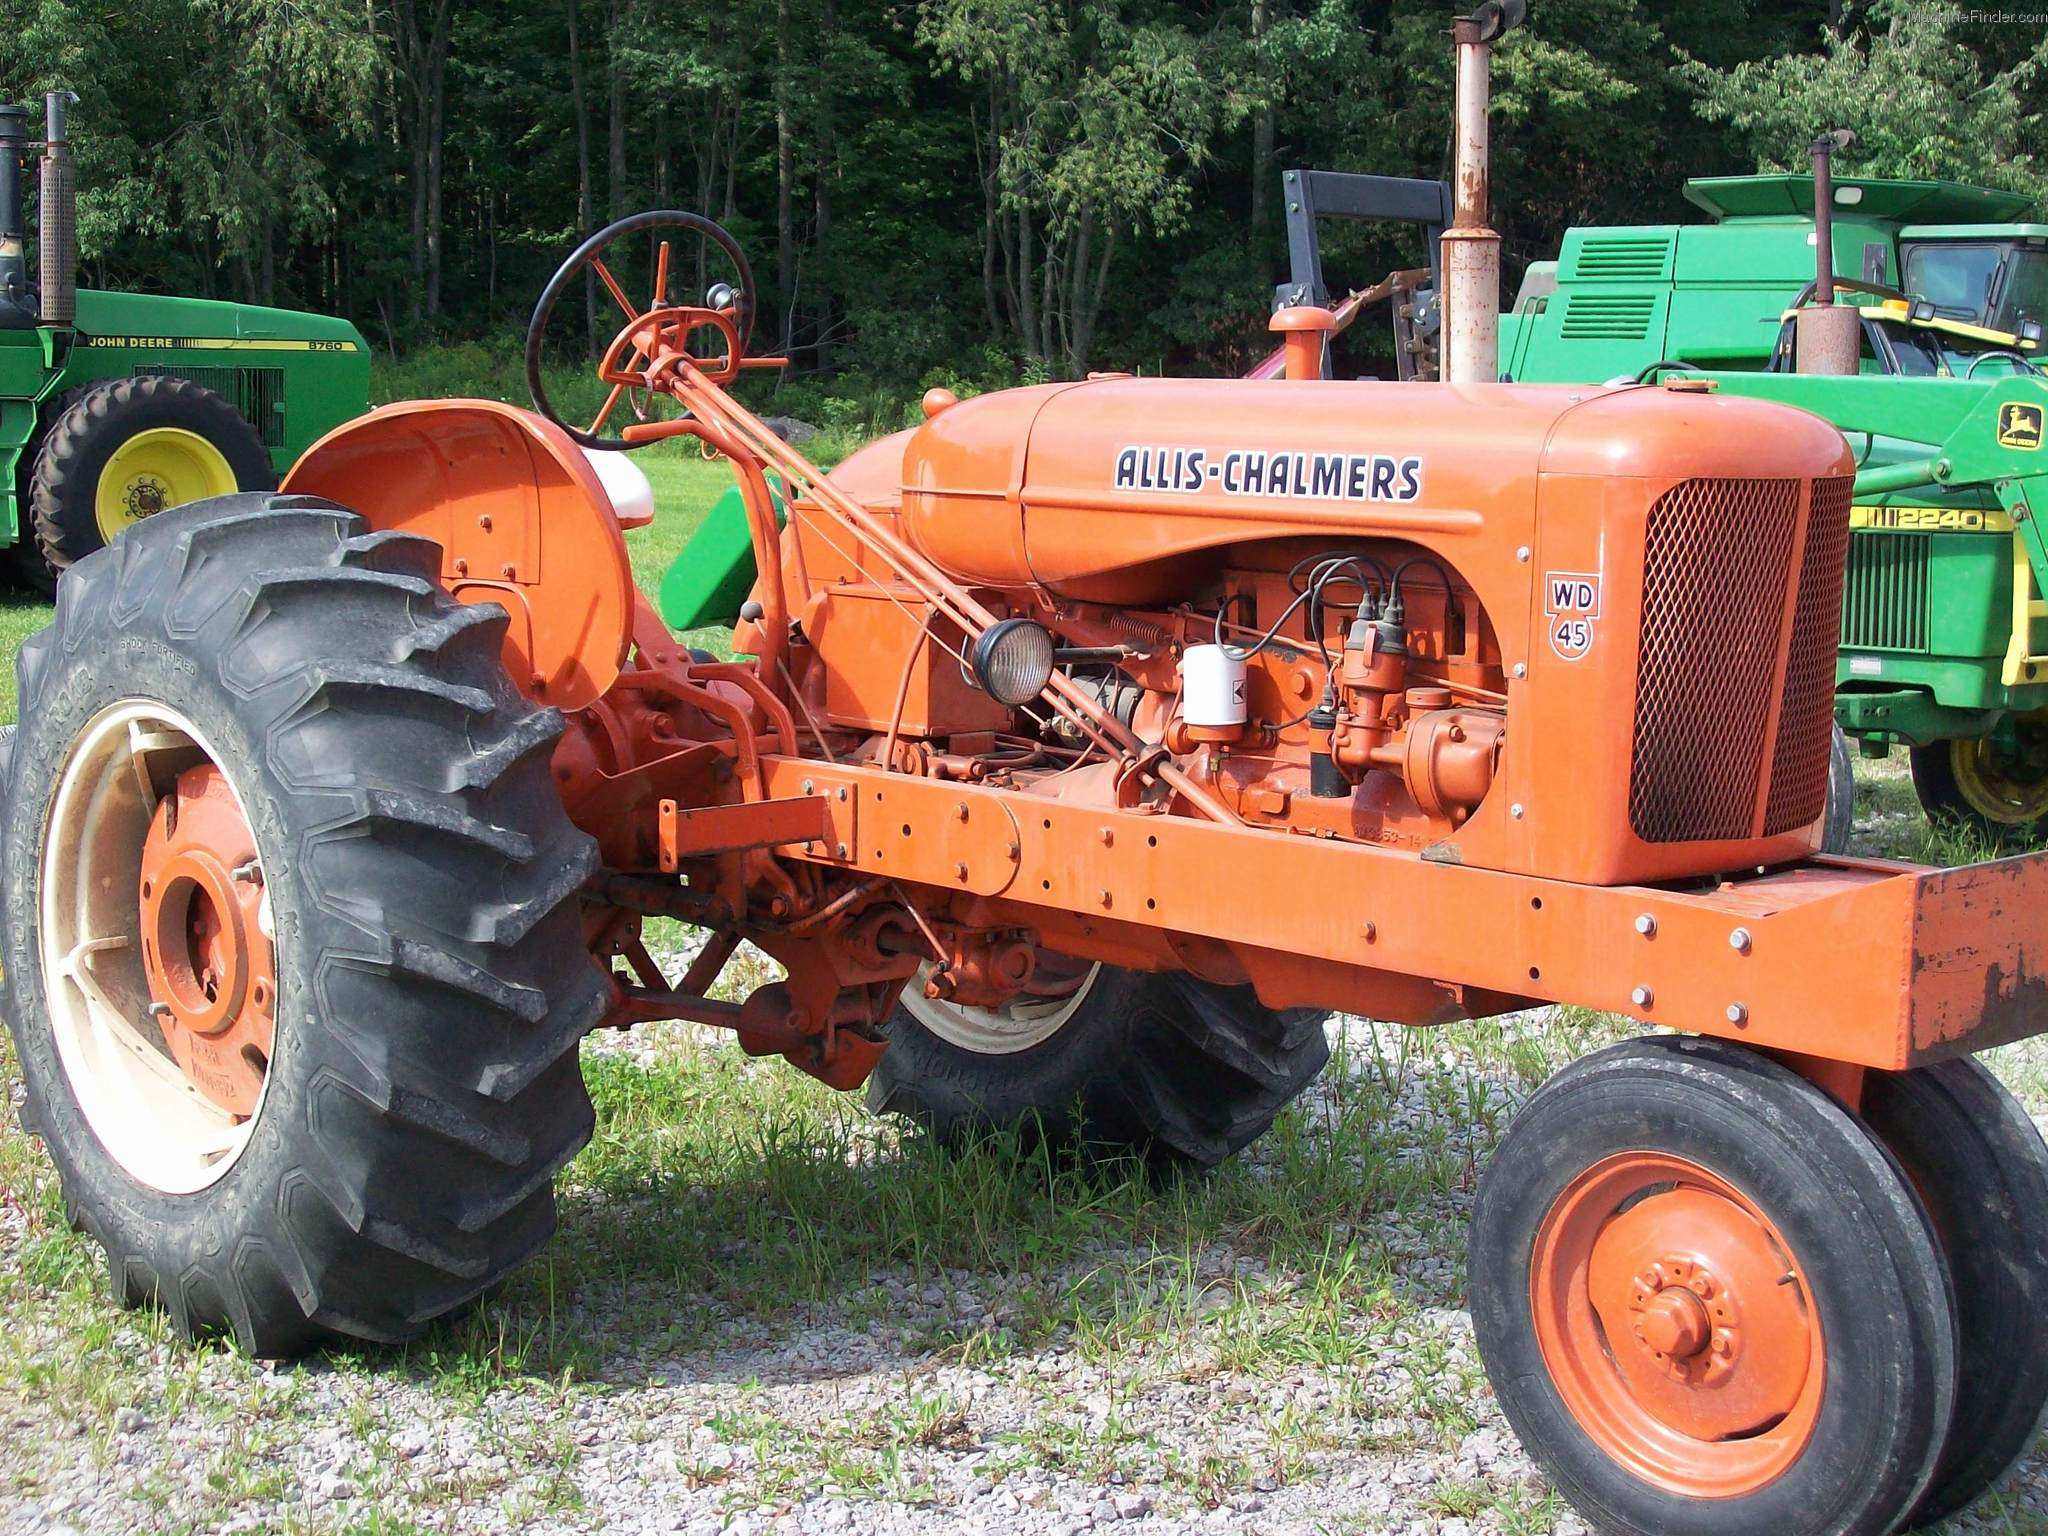 1948 Allis Chalmers Wd Wiring Diagram Trusted Electrical Problem With C Allischalmers Forum Readingrat Net 200